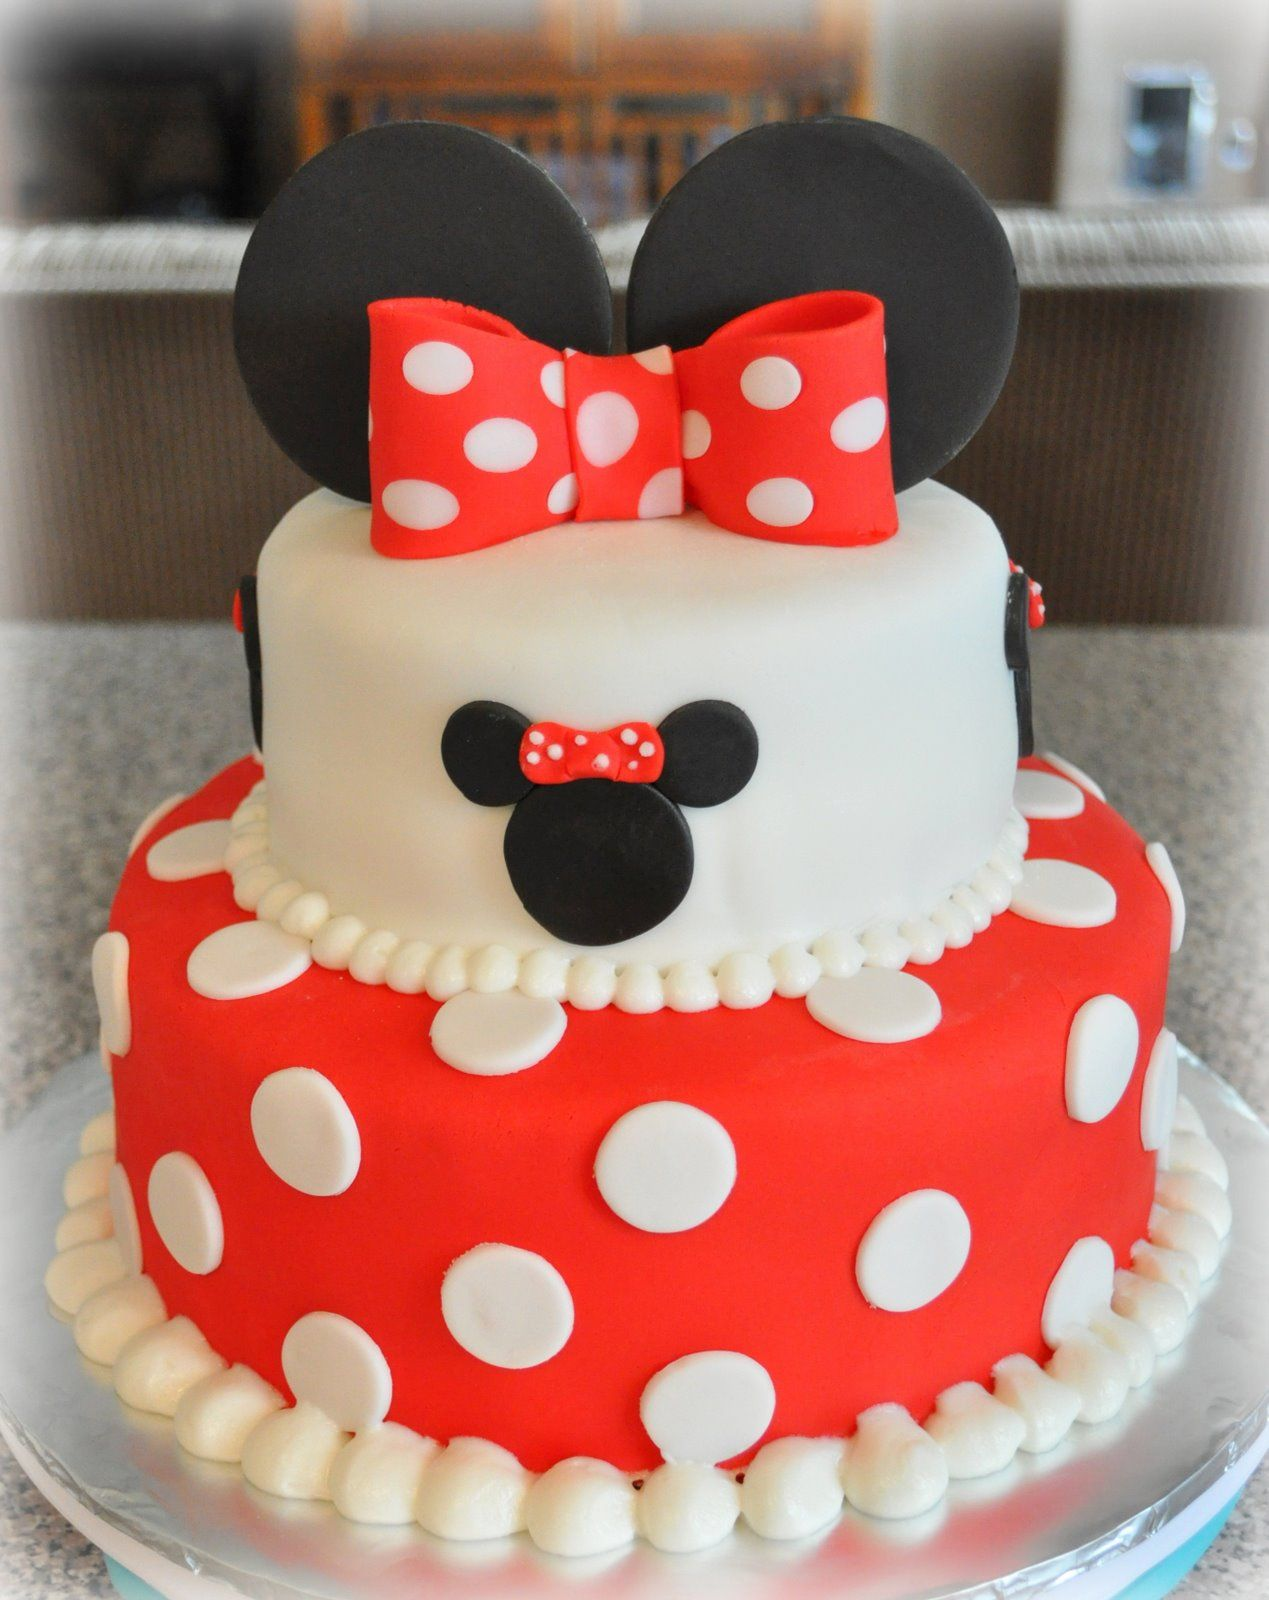 cake minnie mouse birthday cakes minnie mouse cake birthday cake ...